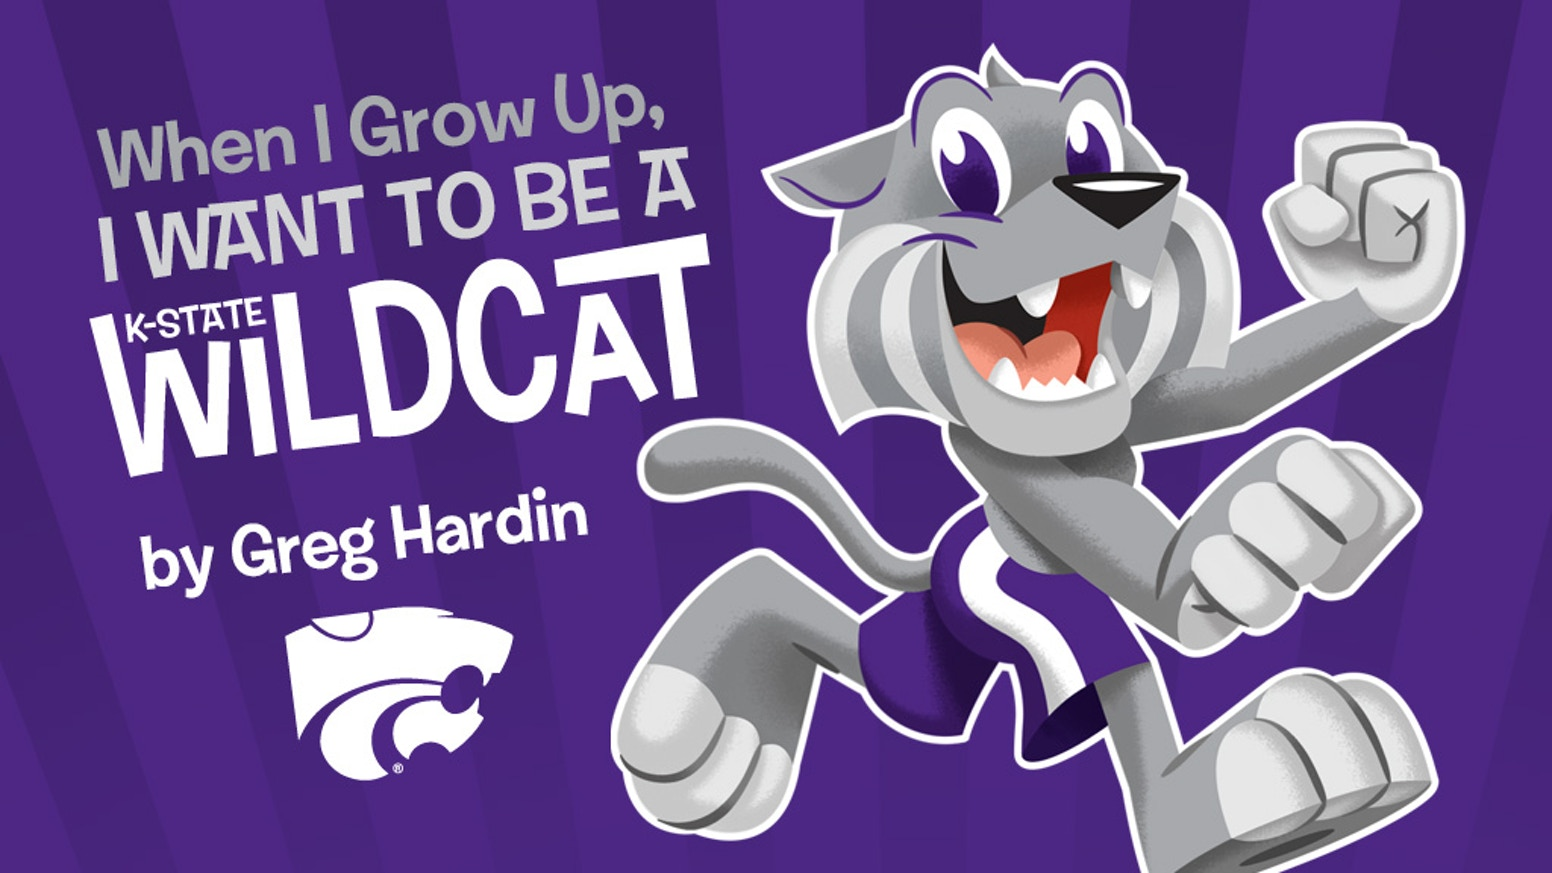 An officially licensed Kansas State University illustrated book (that adults will enjoy) by professional illustrator Greg Hardin